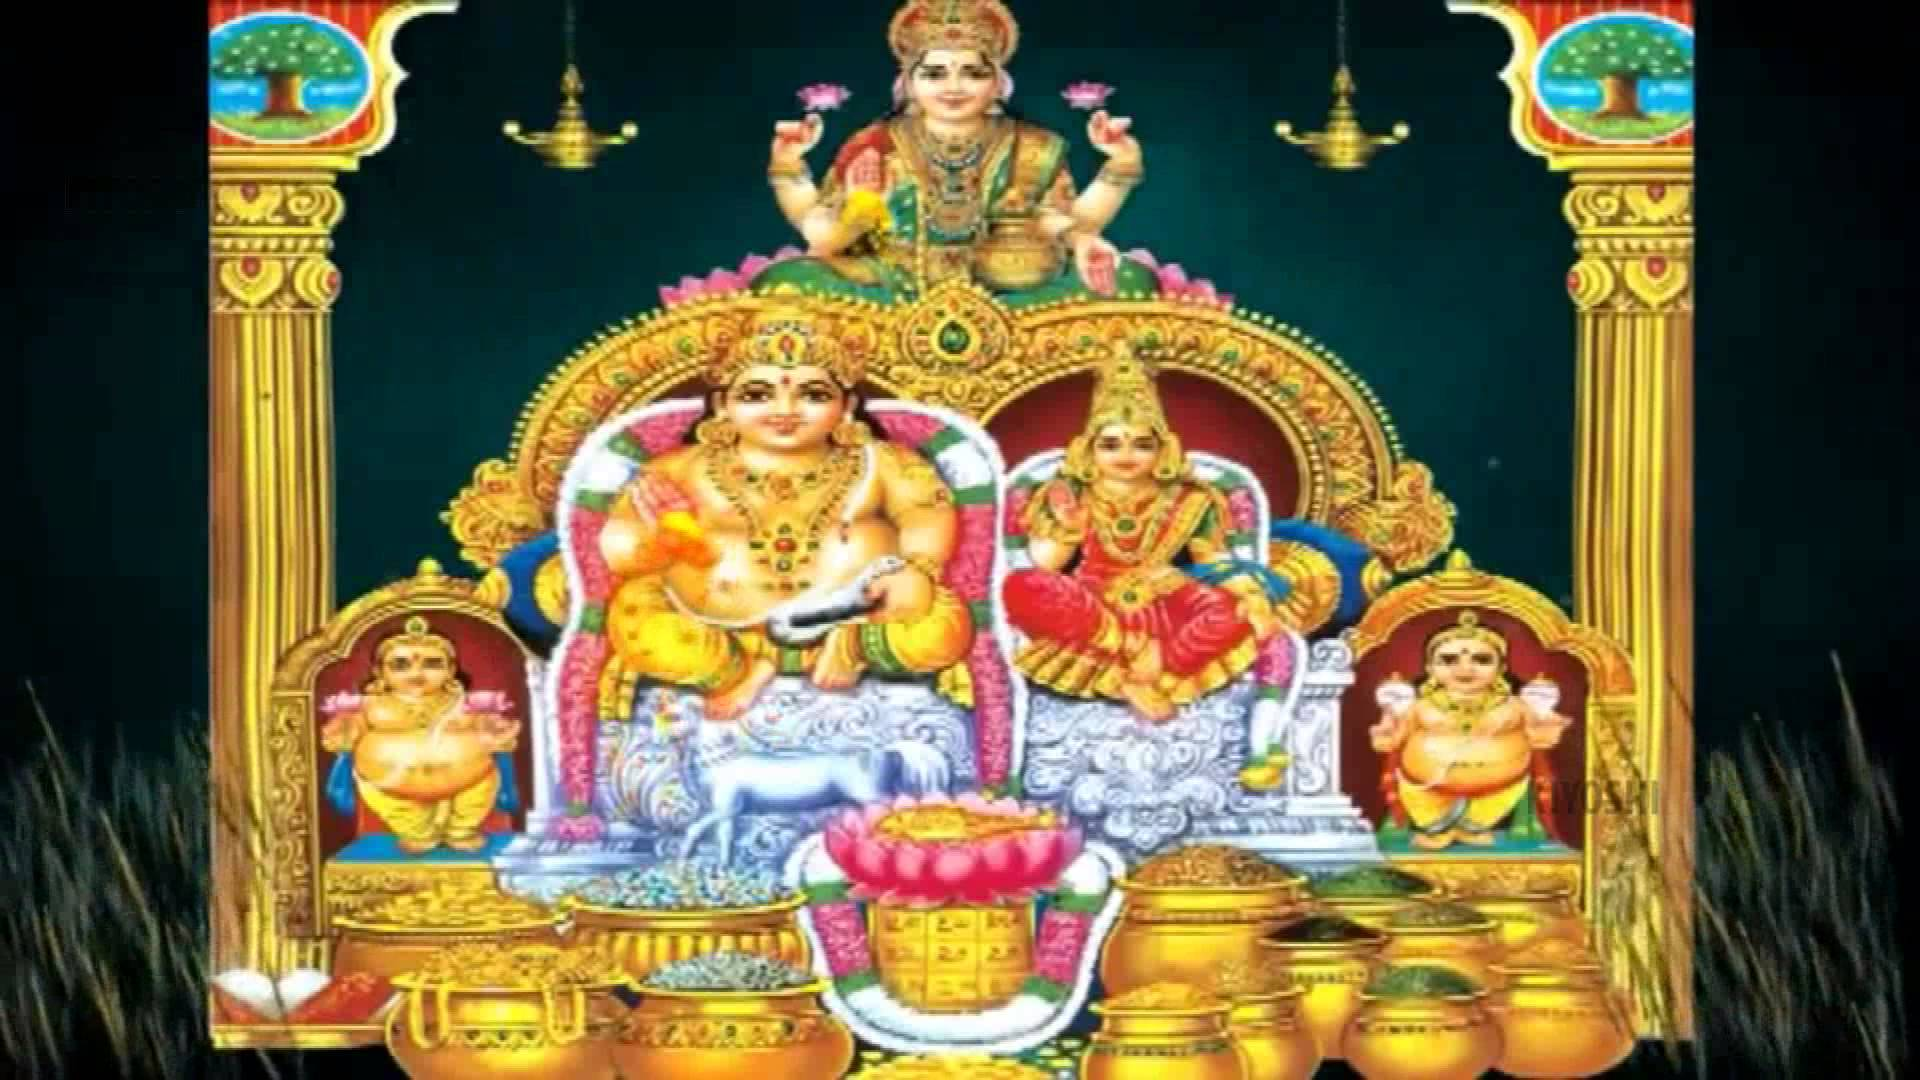 Mahalaxmi Mantra Mp3